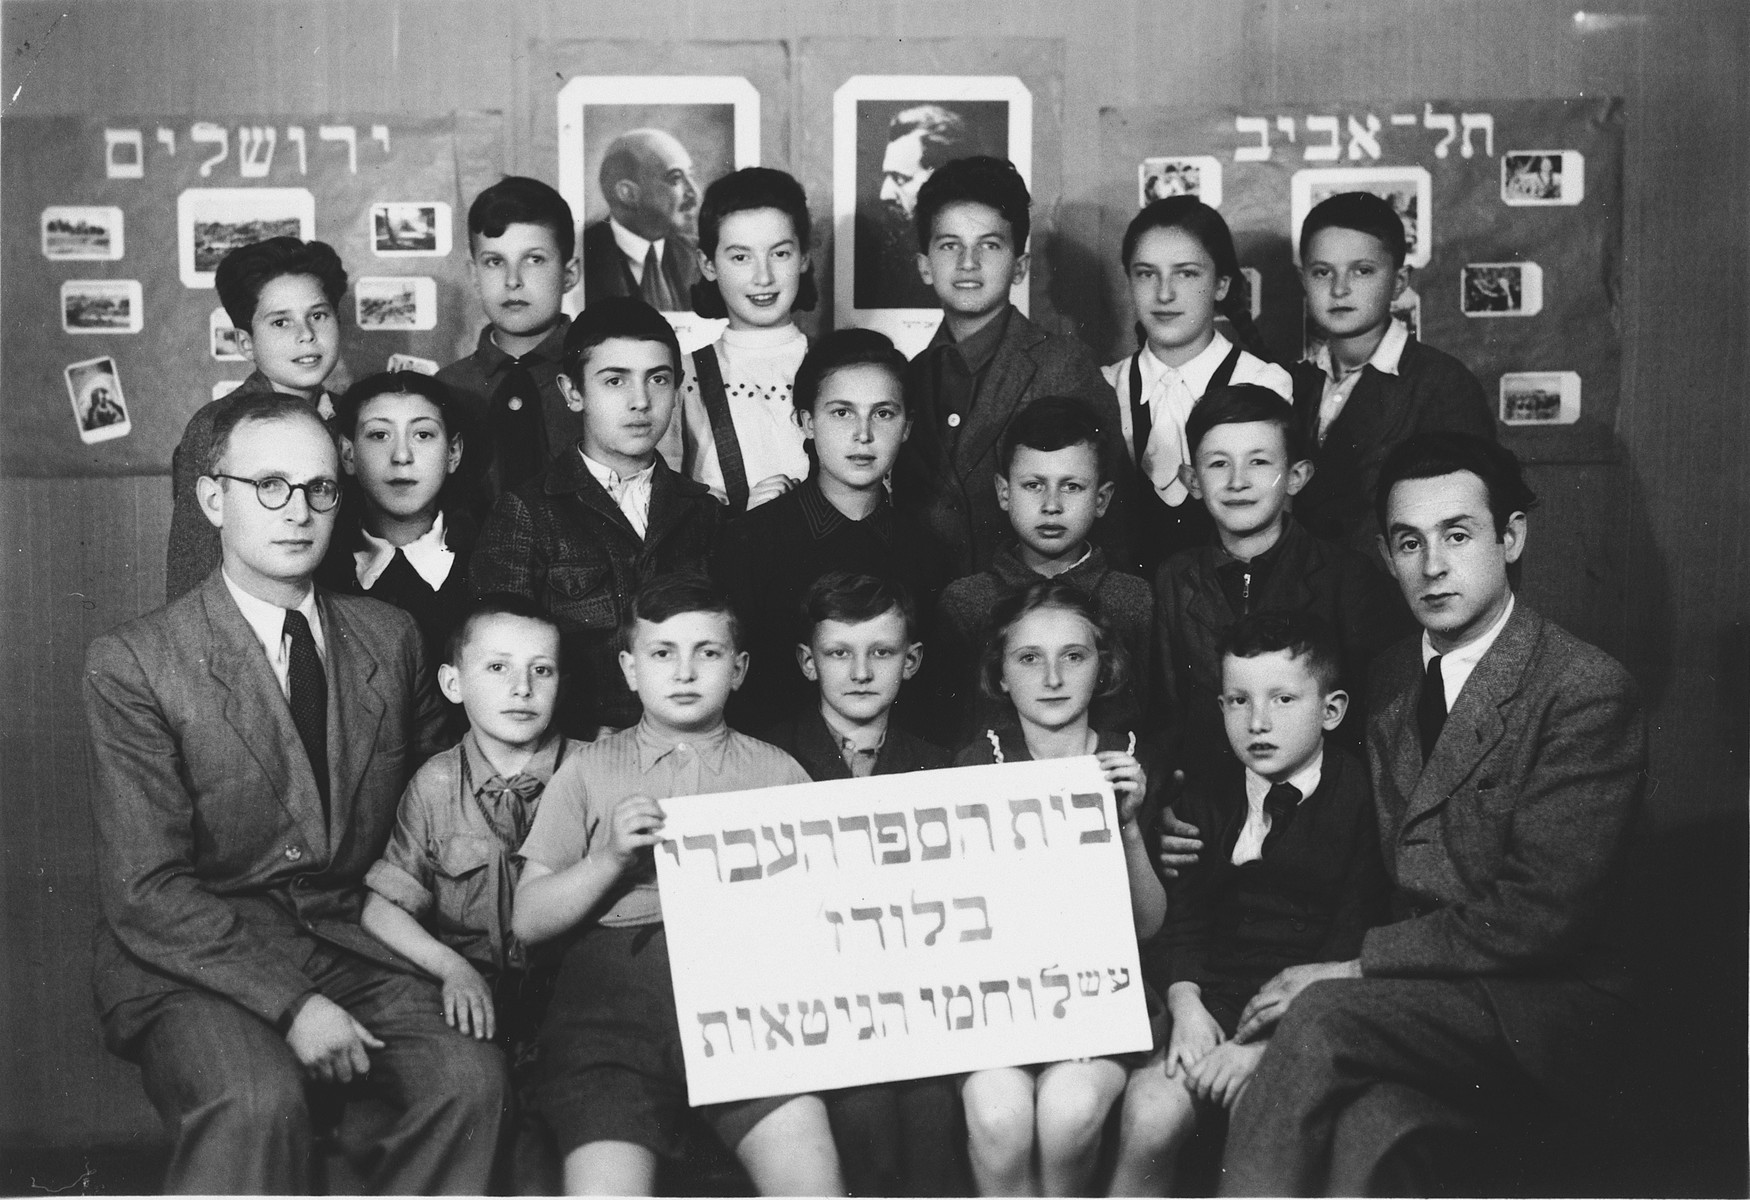 Group portrait of children in the Ghetto Fighters Hebrew school in Lodz after the war.